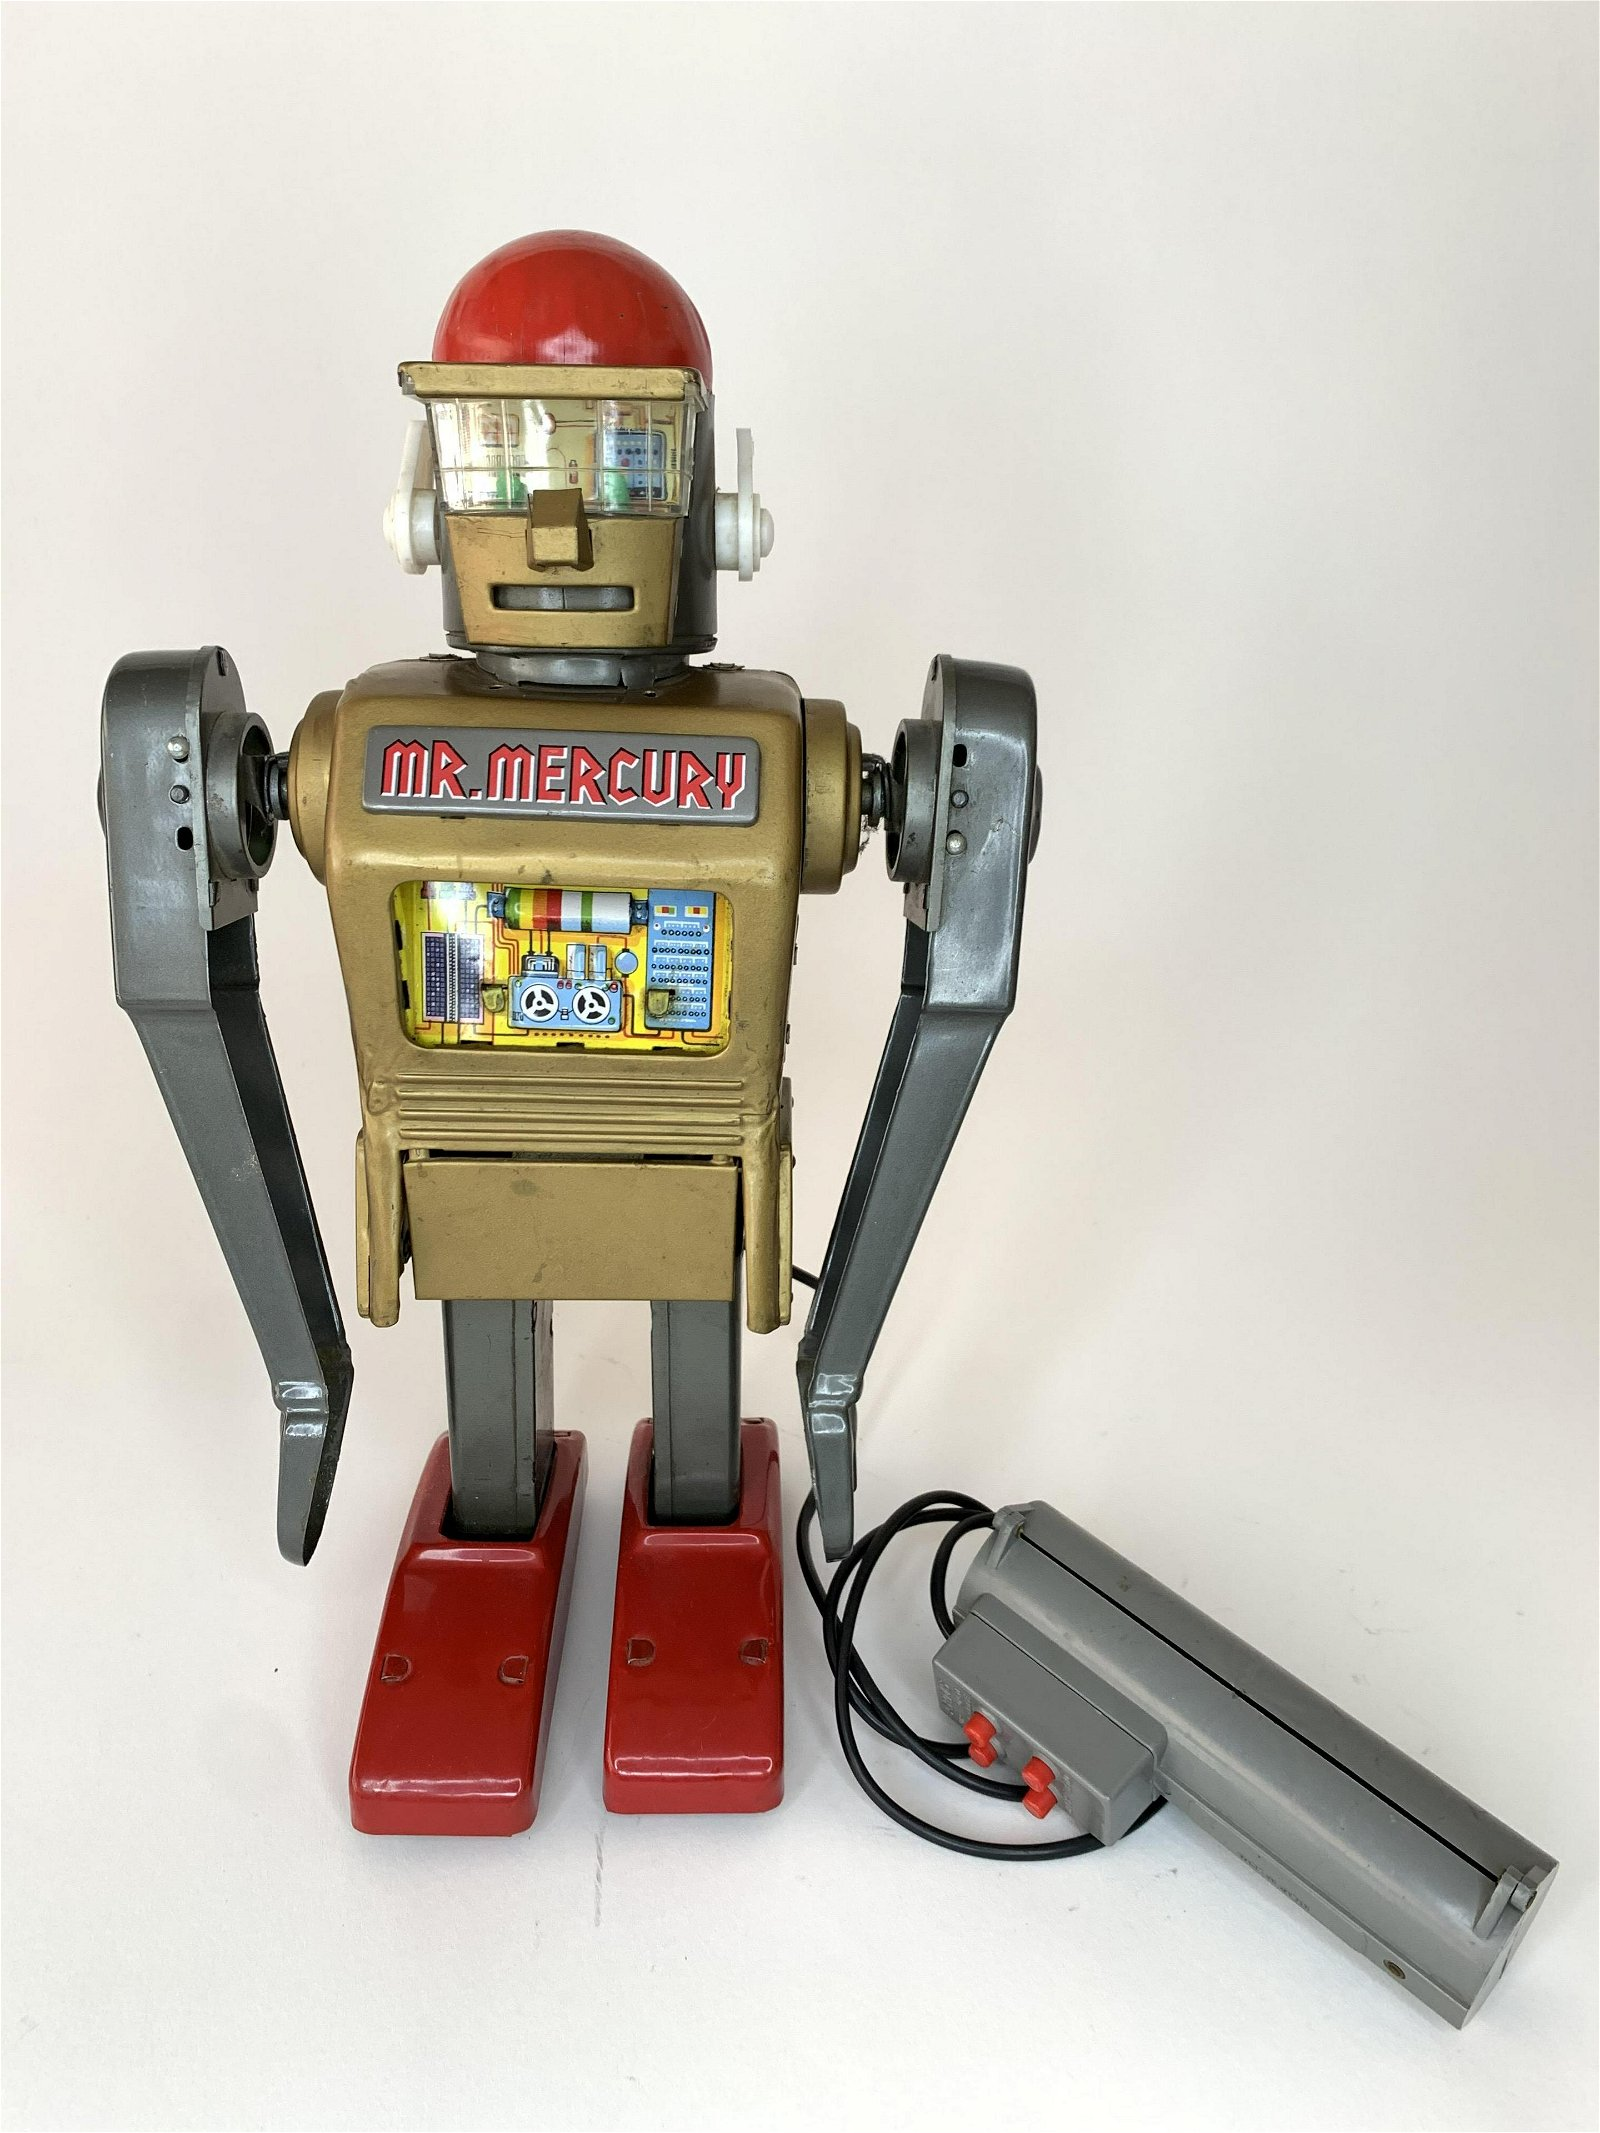 Battery Operated Mr. Mercury Robot